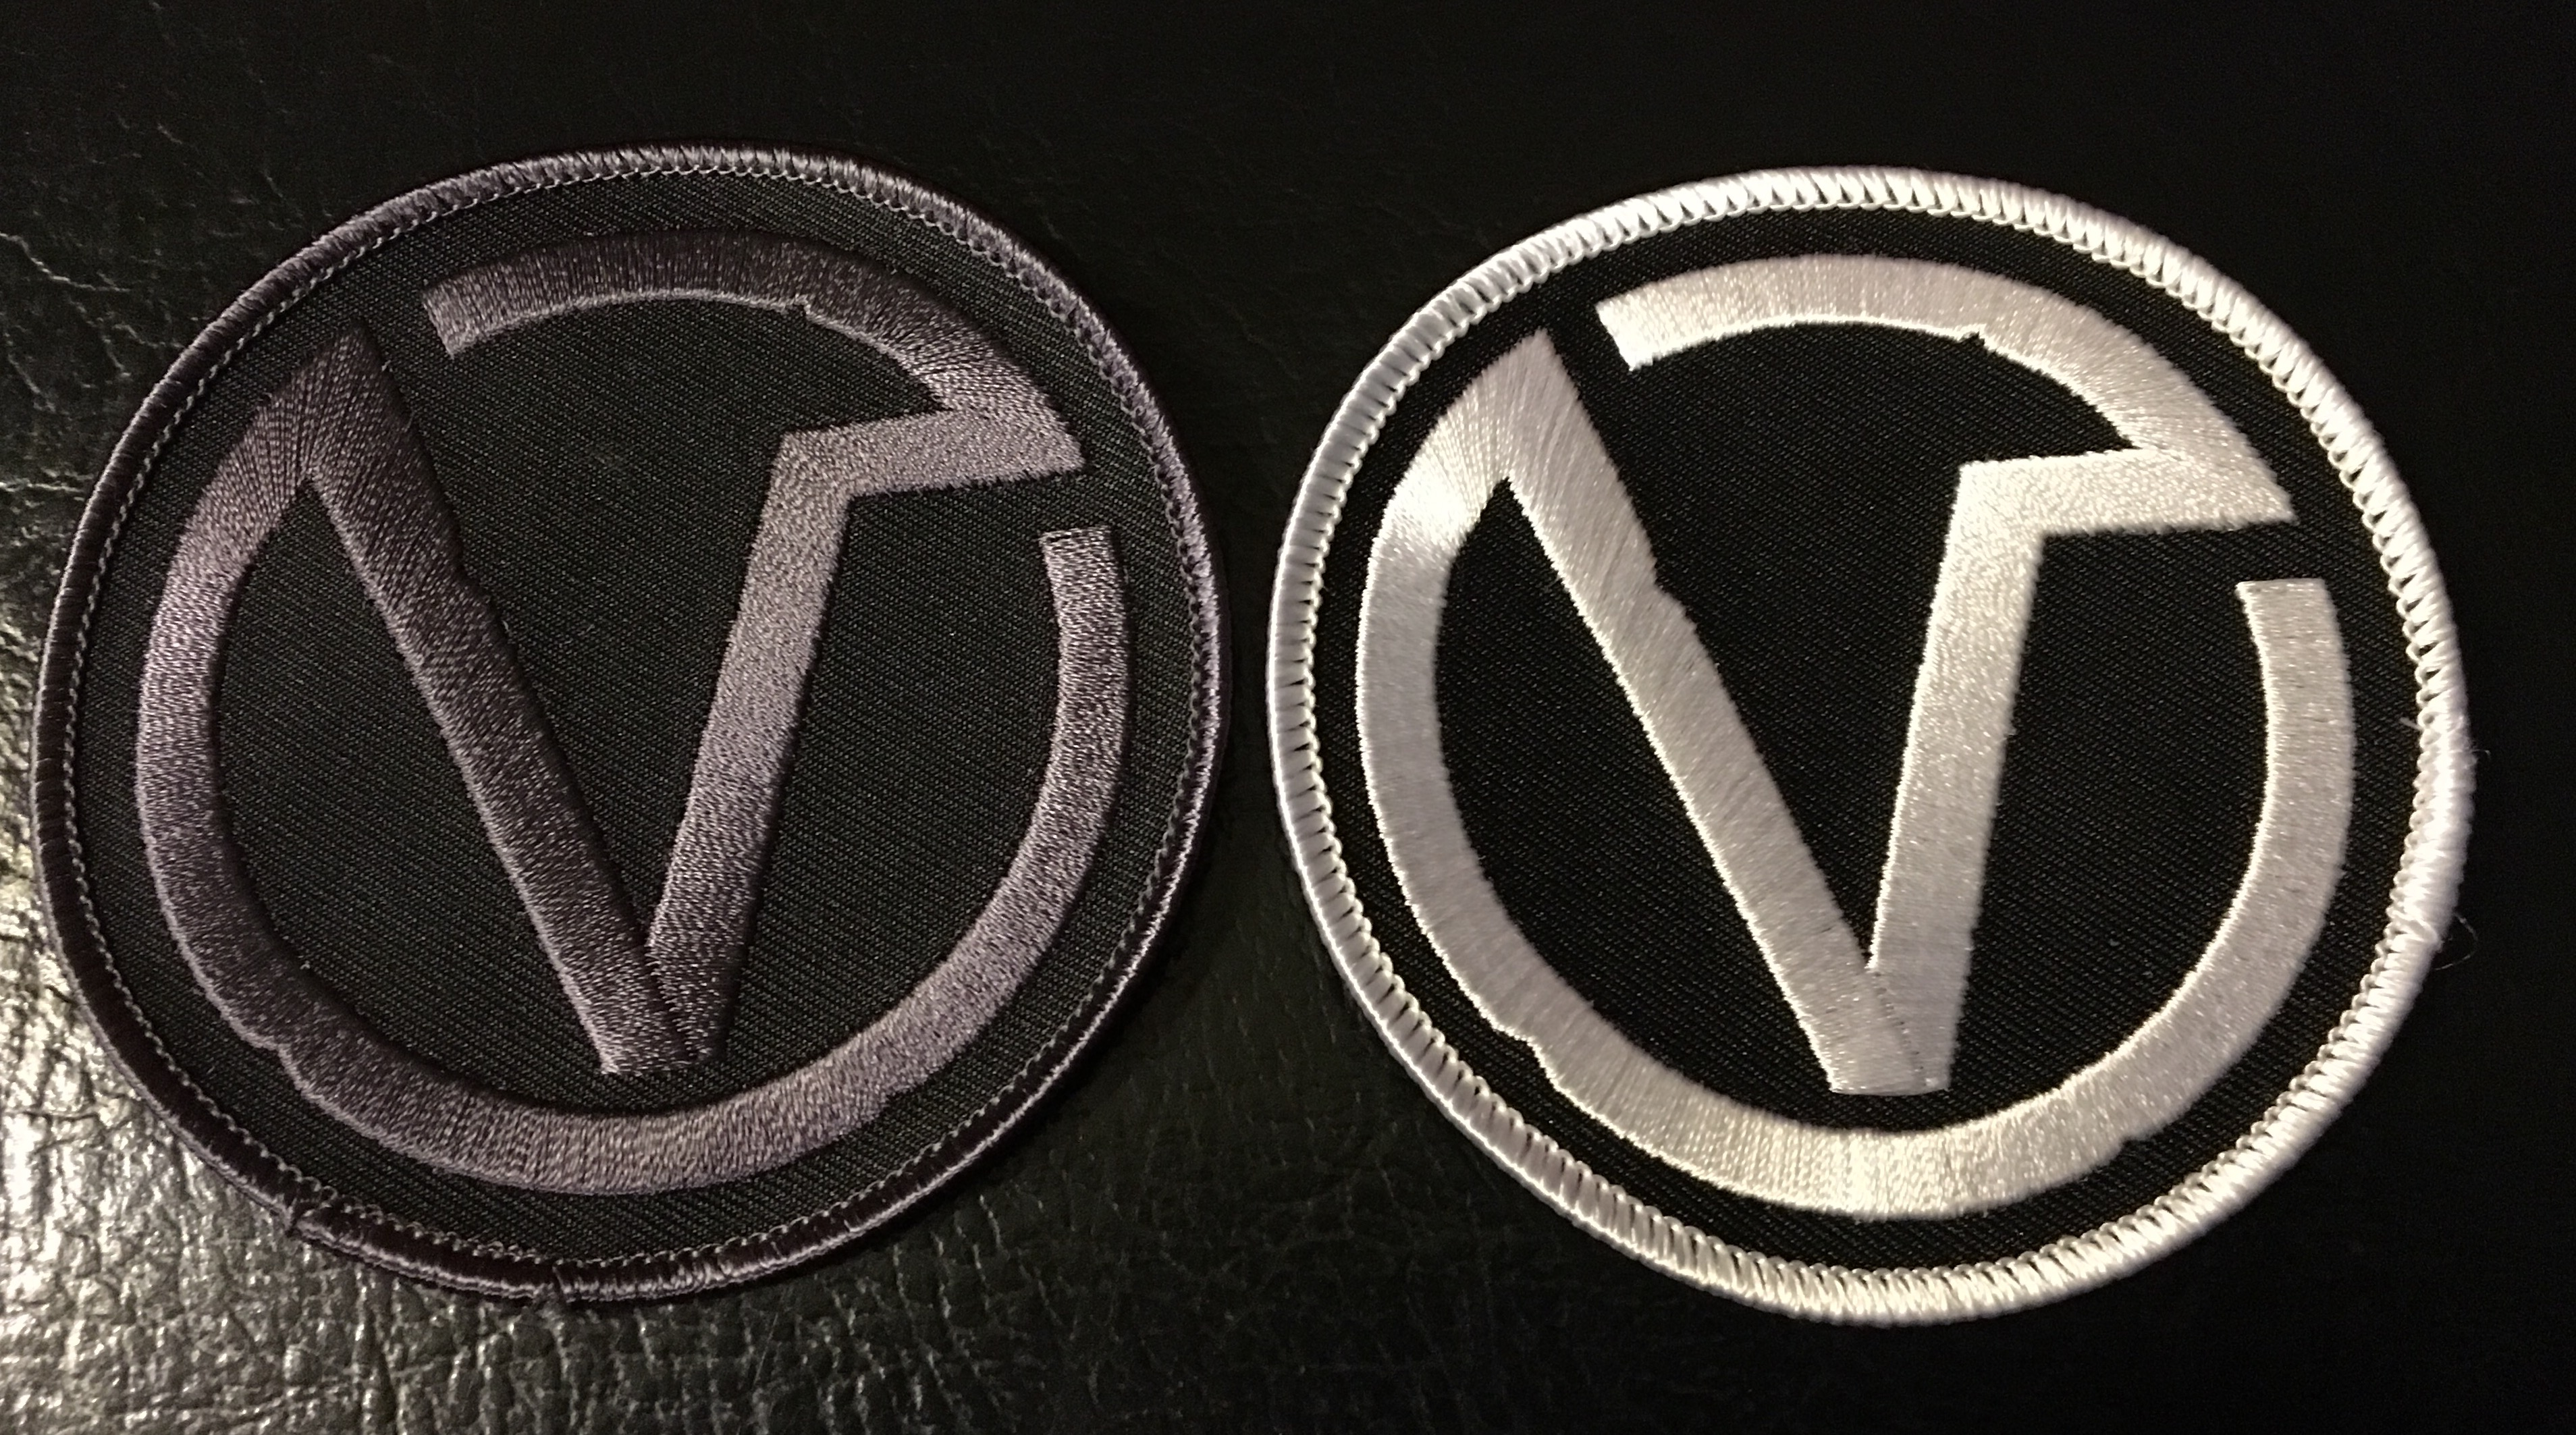 Circle V Embroidered Patch Viruspunks Online Store Powered By